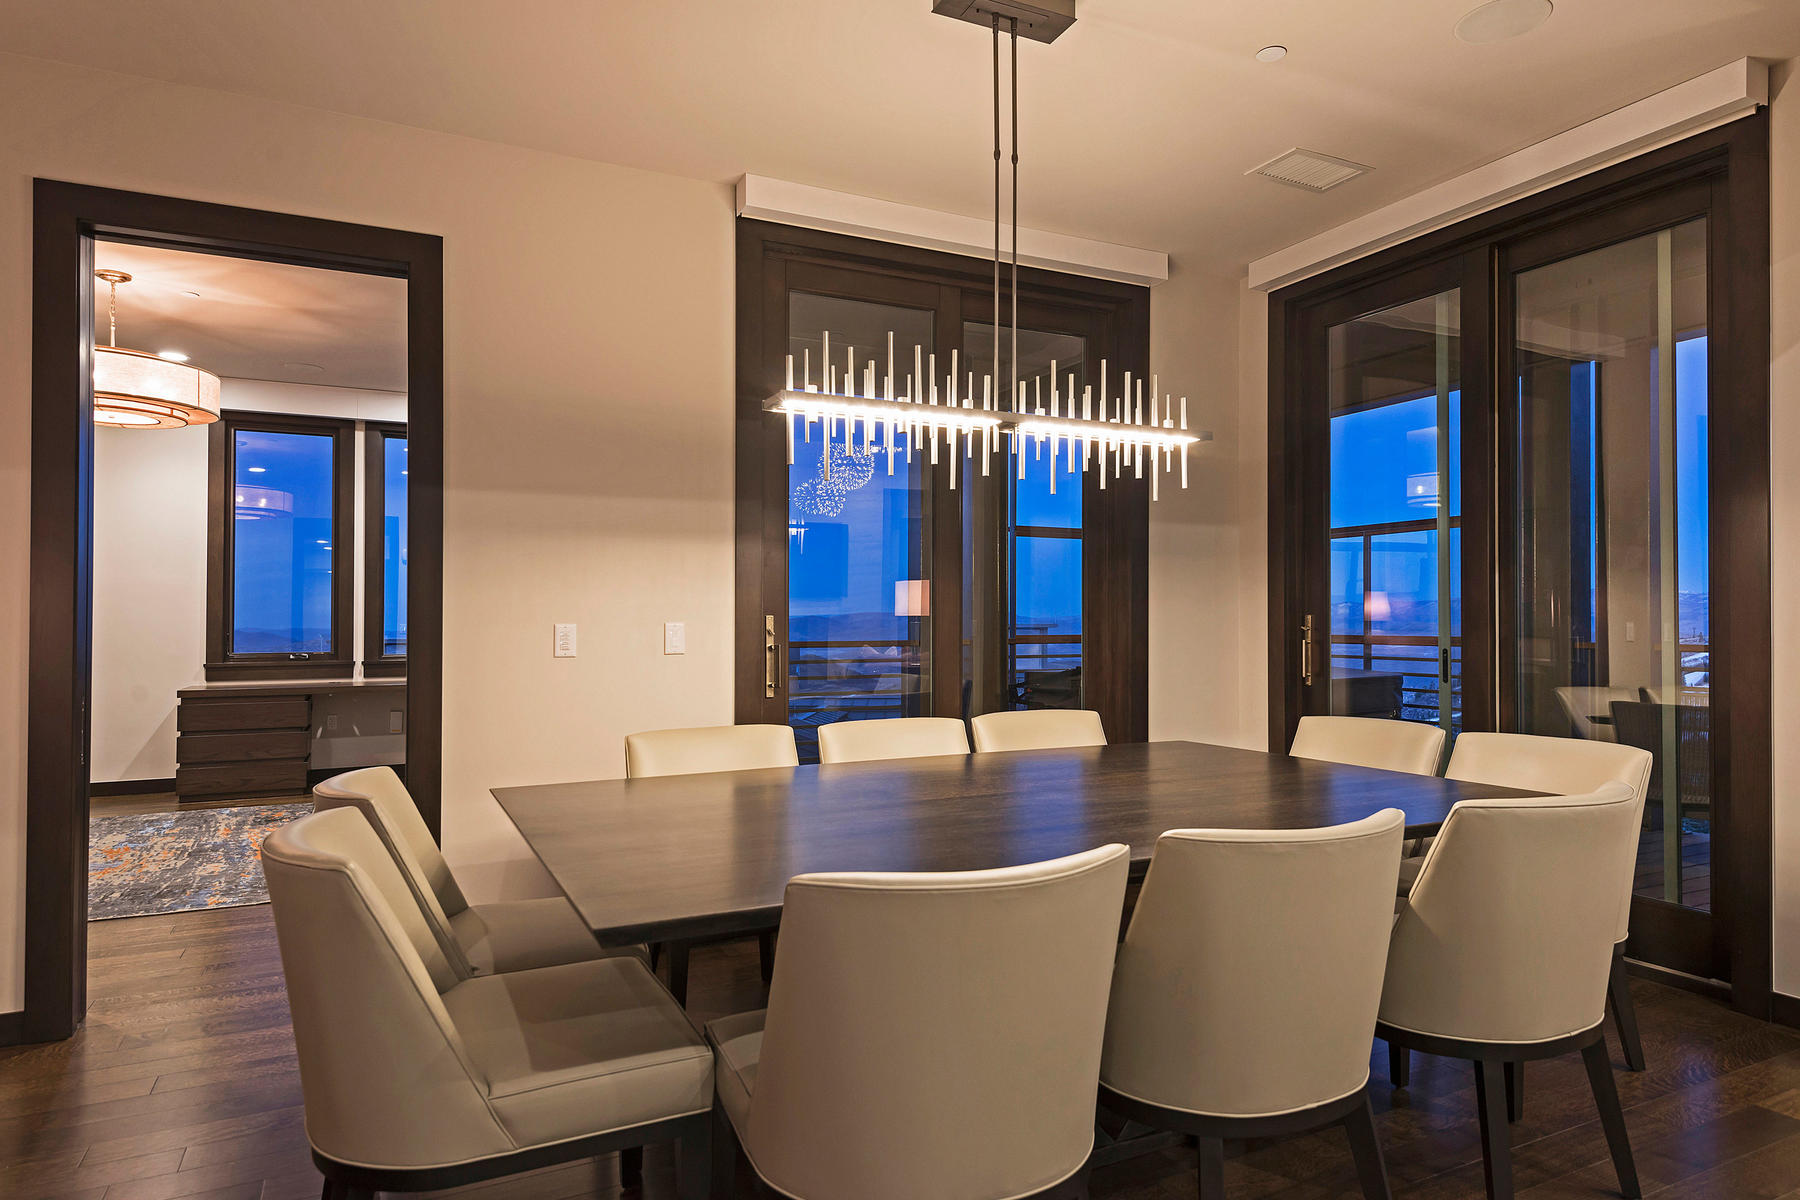 Additional photo for property listing at Brand New Turn-Key Ski-in/Ski-out Penthouse at Deer Valley 7101 Stein Cir #621 Park City, Utah 84060 United States